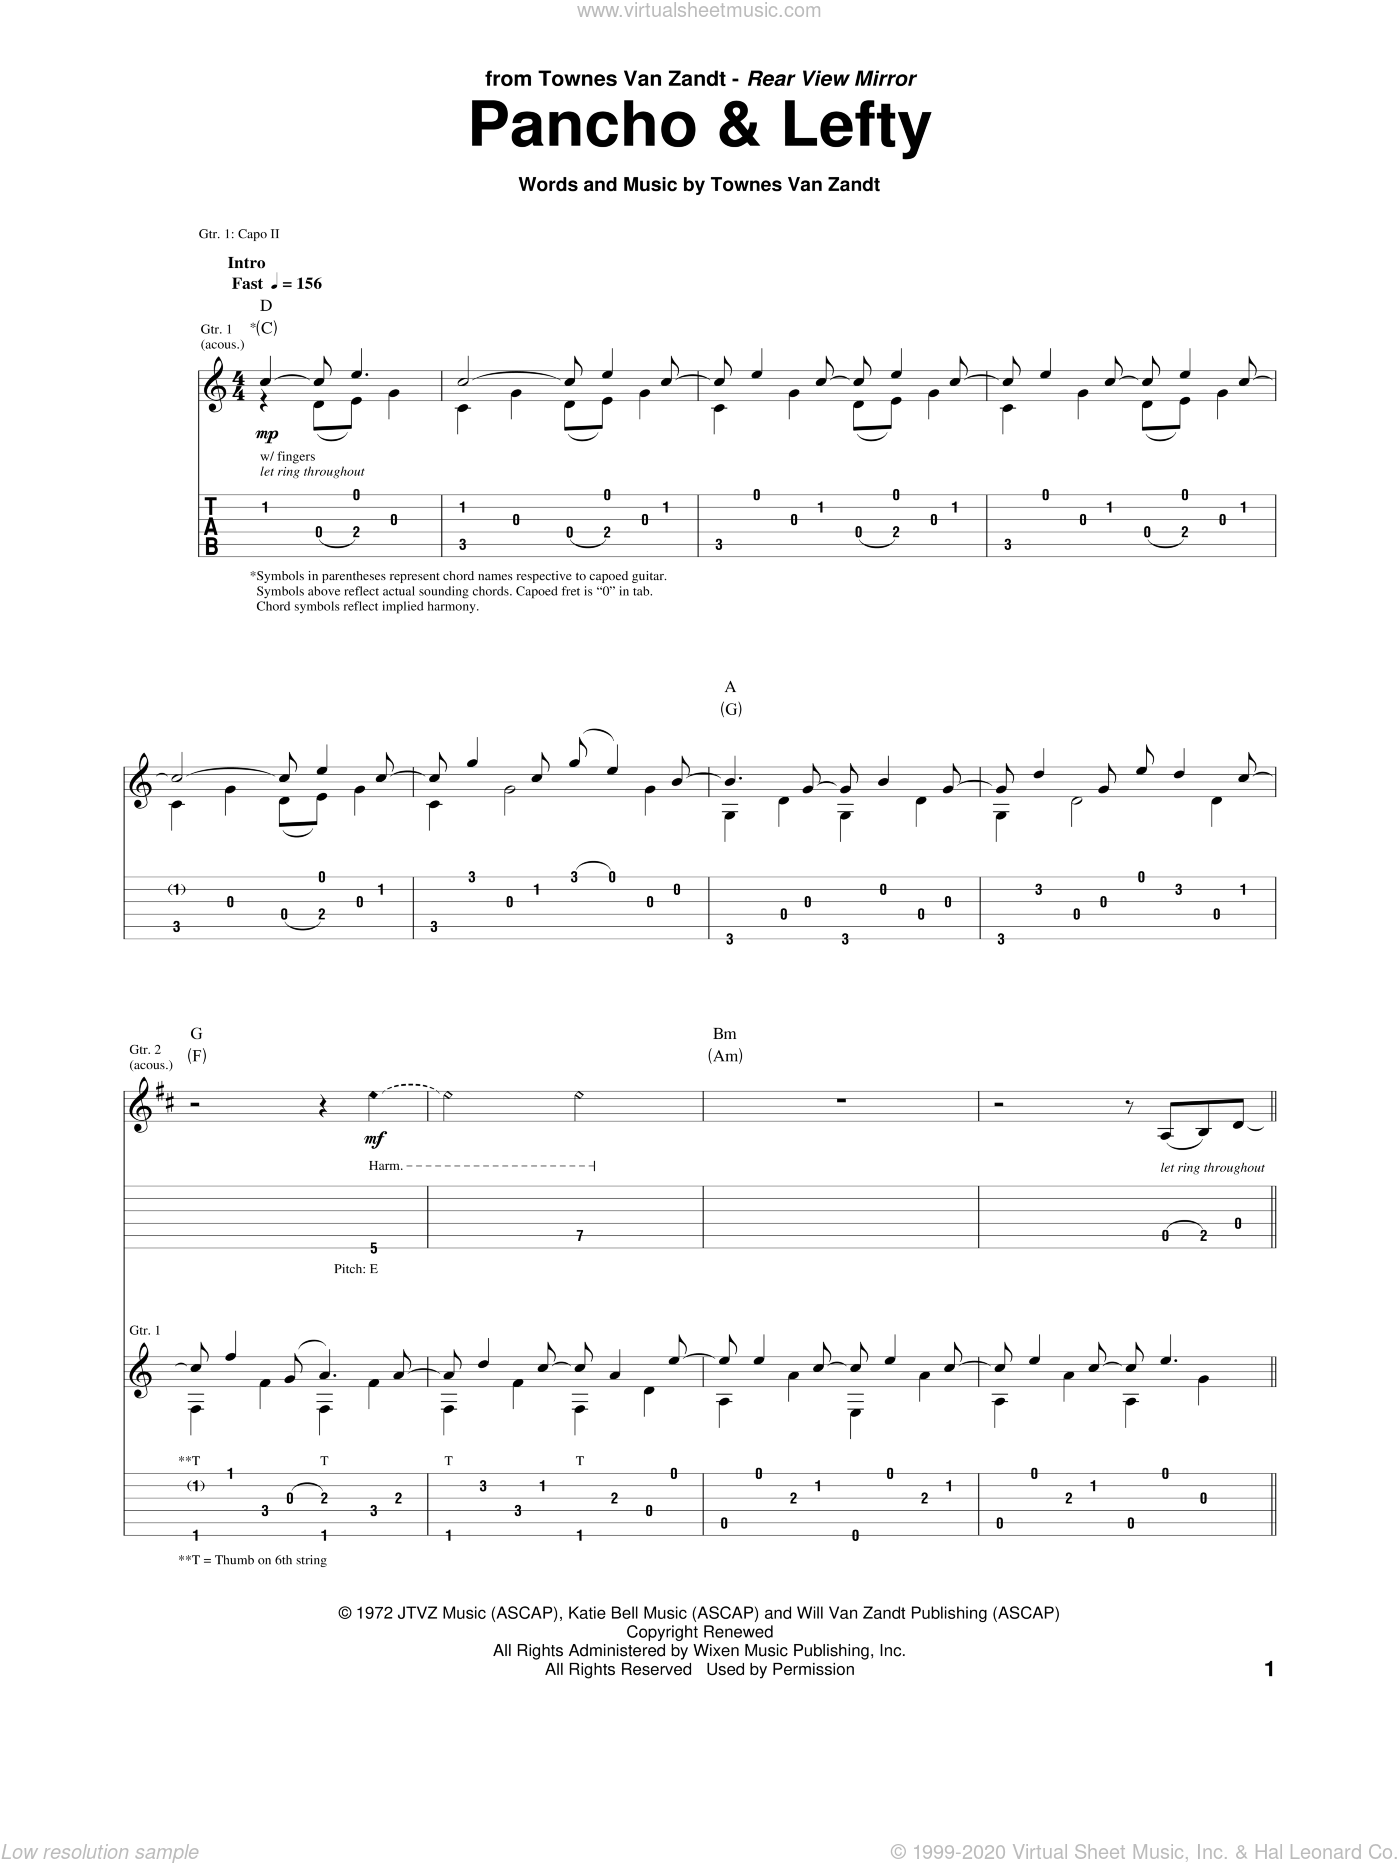 Pancho And Lefty sheet music for guitar (tablature) by Townes Van Zandt and Willie Nelson & Merle Haggard, intermediate skill level